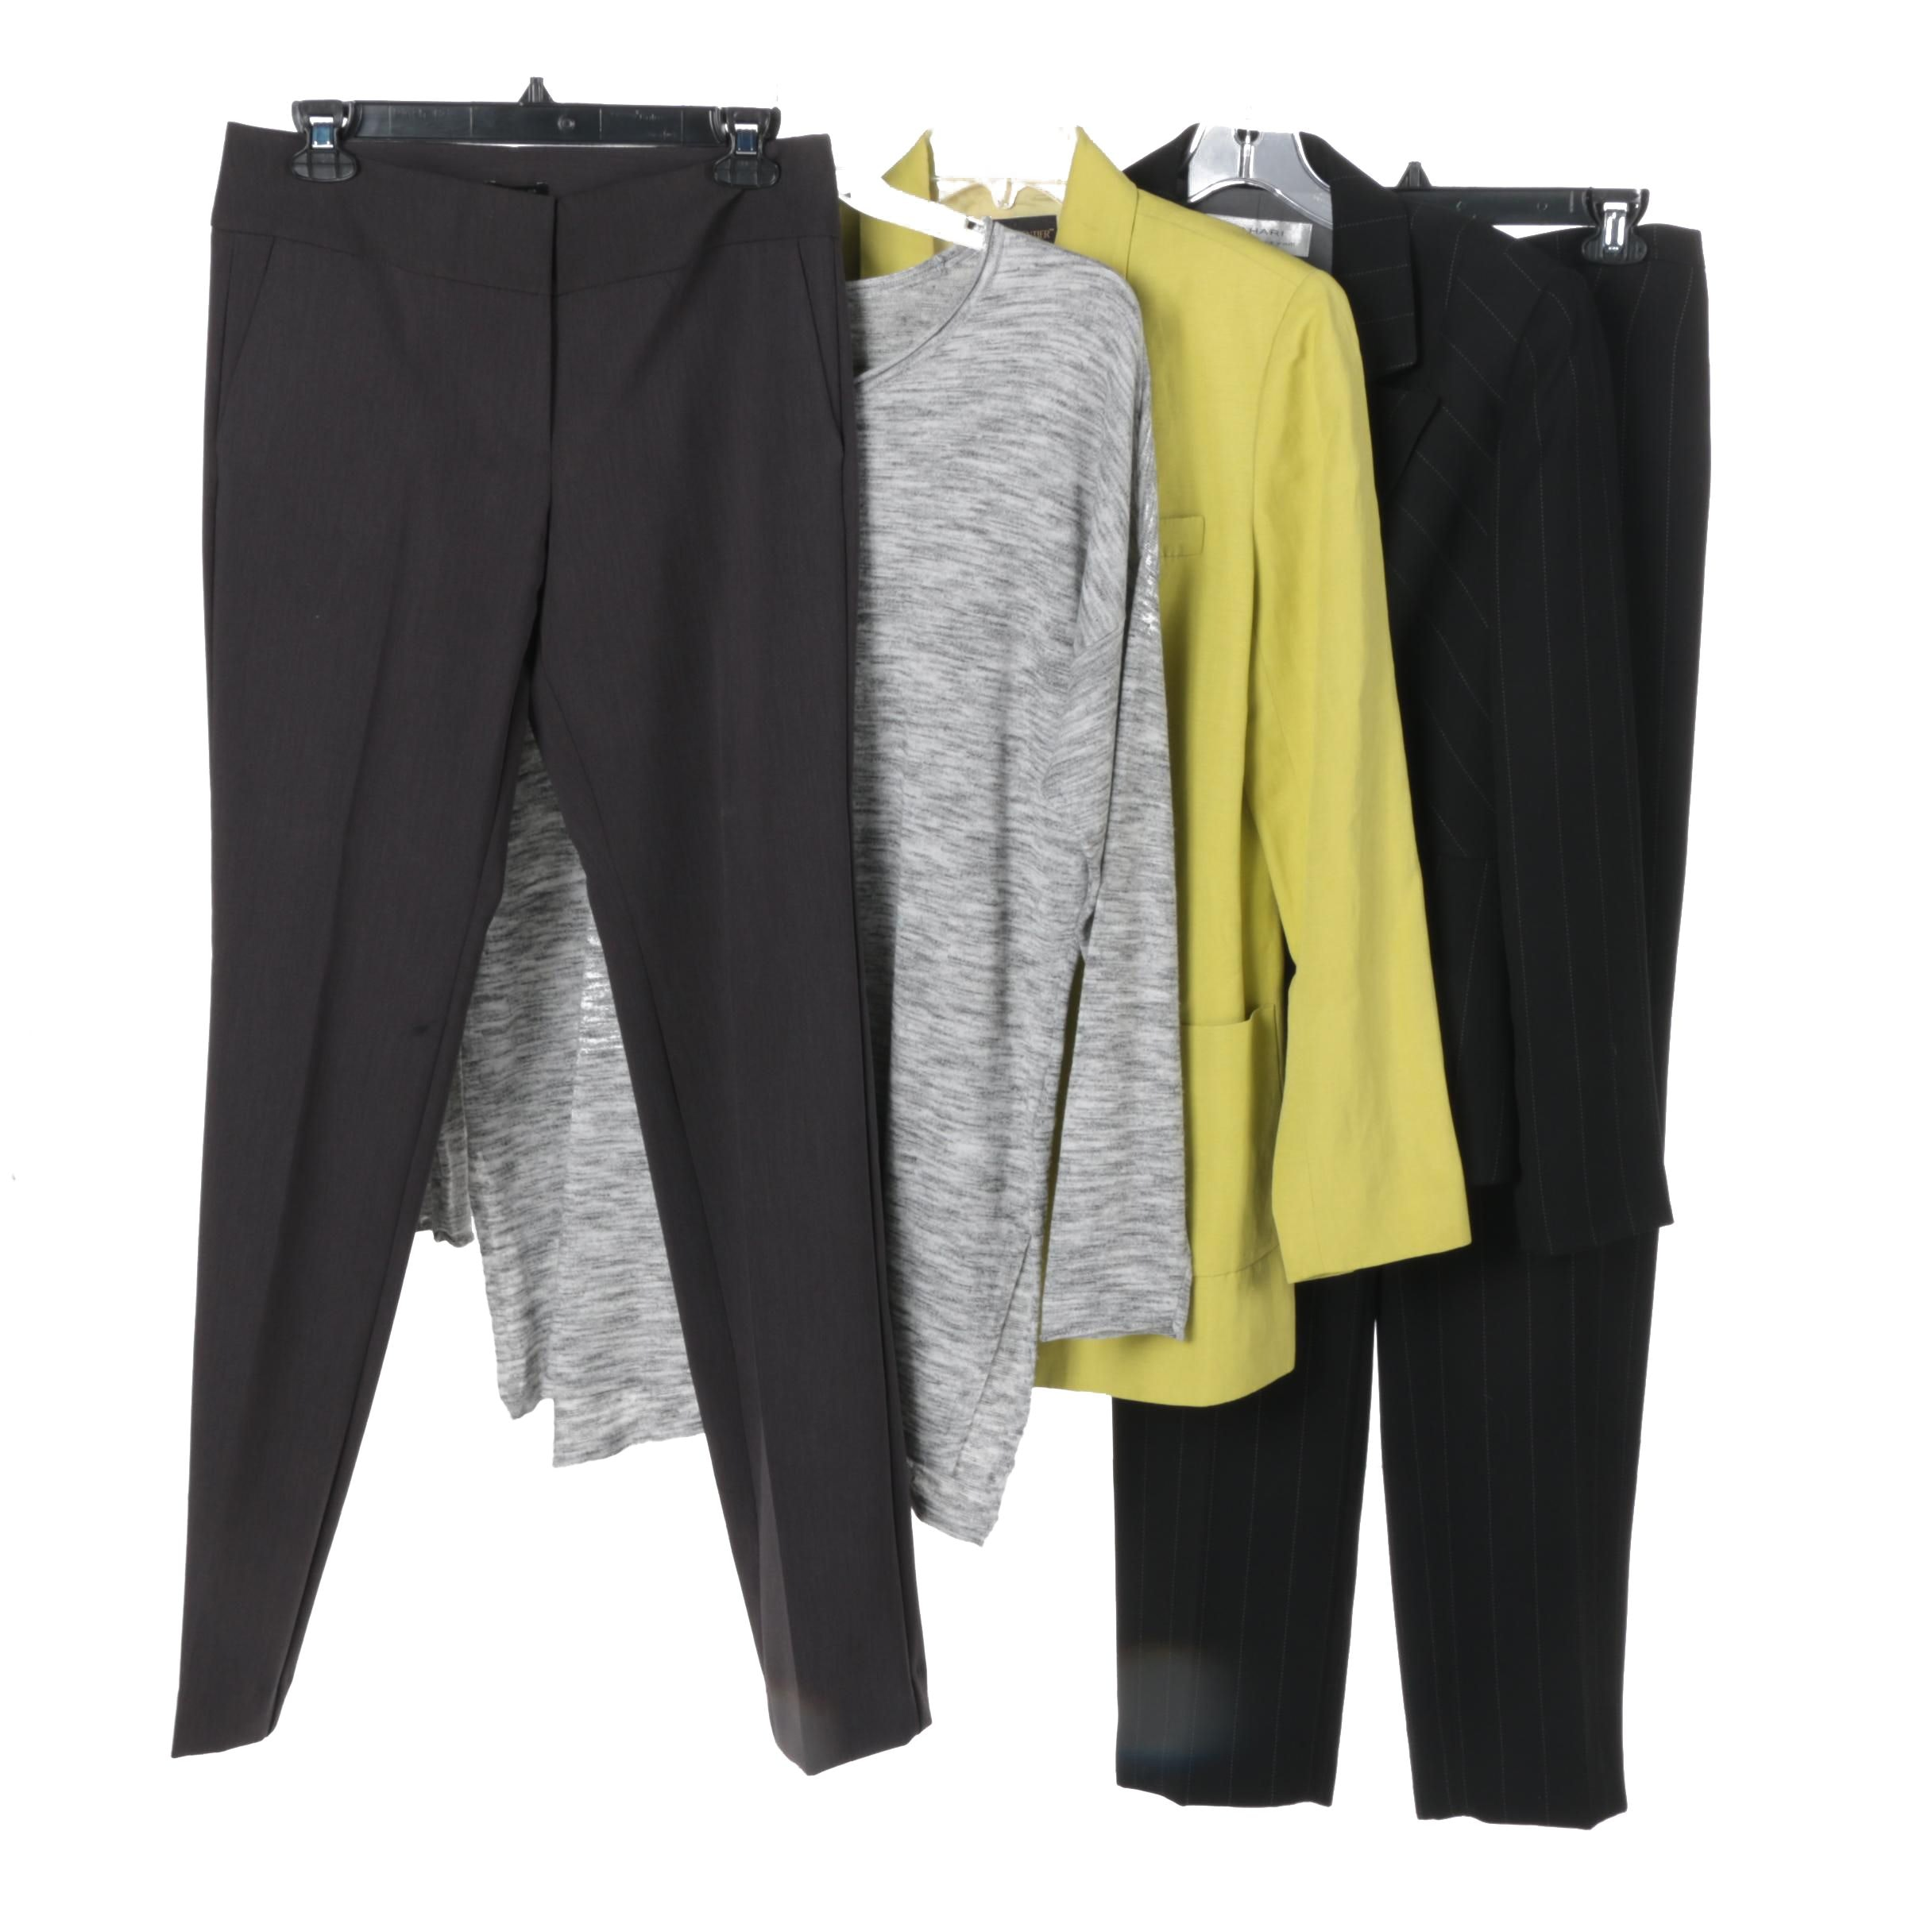 Women's Suits and Separates Including Tahari